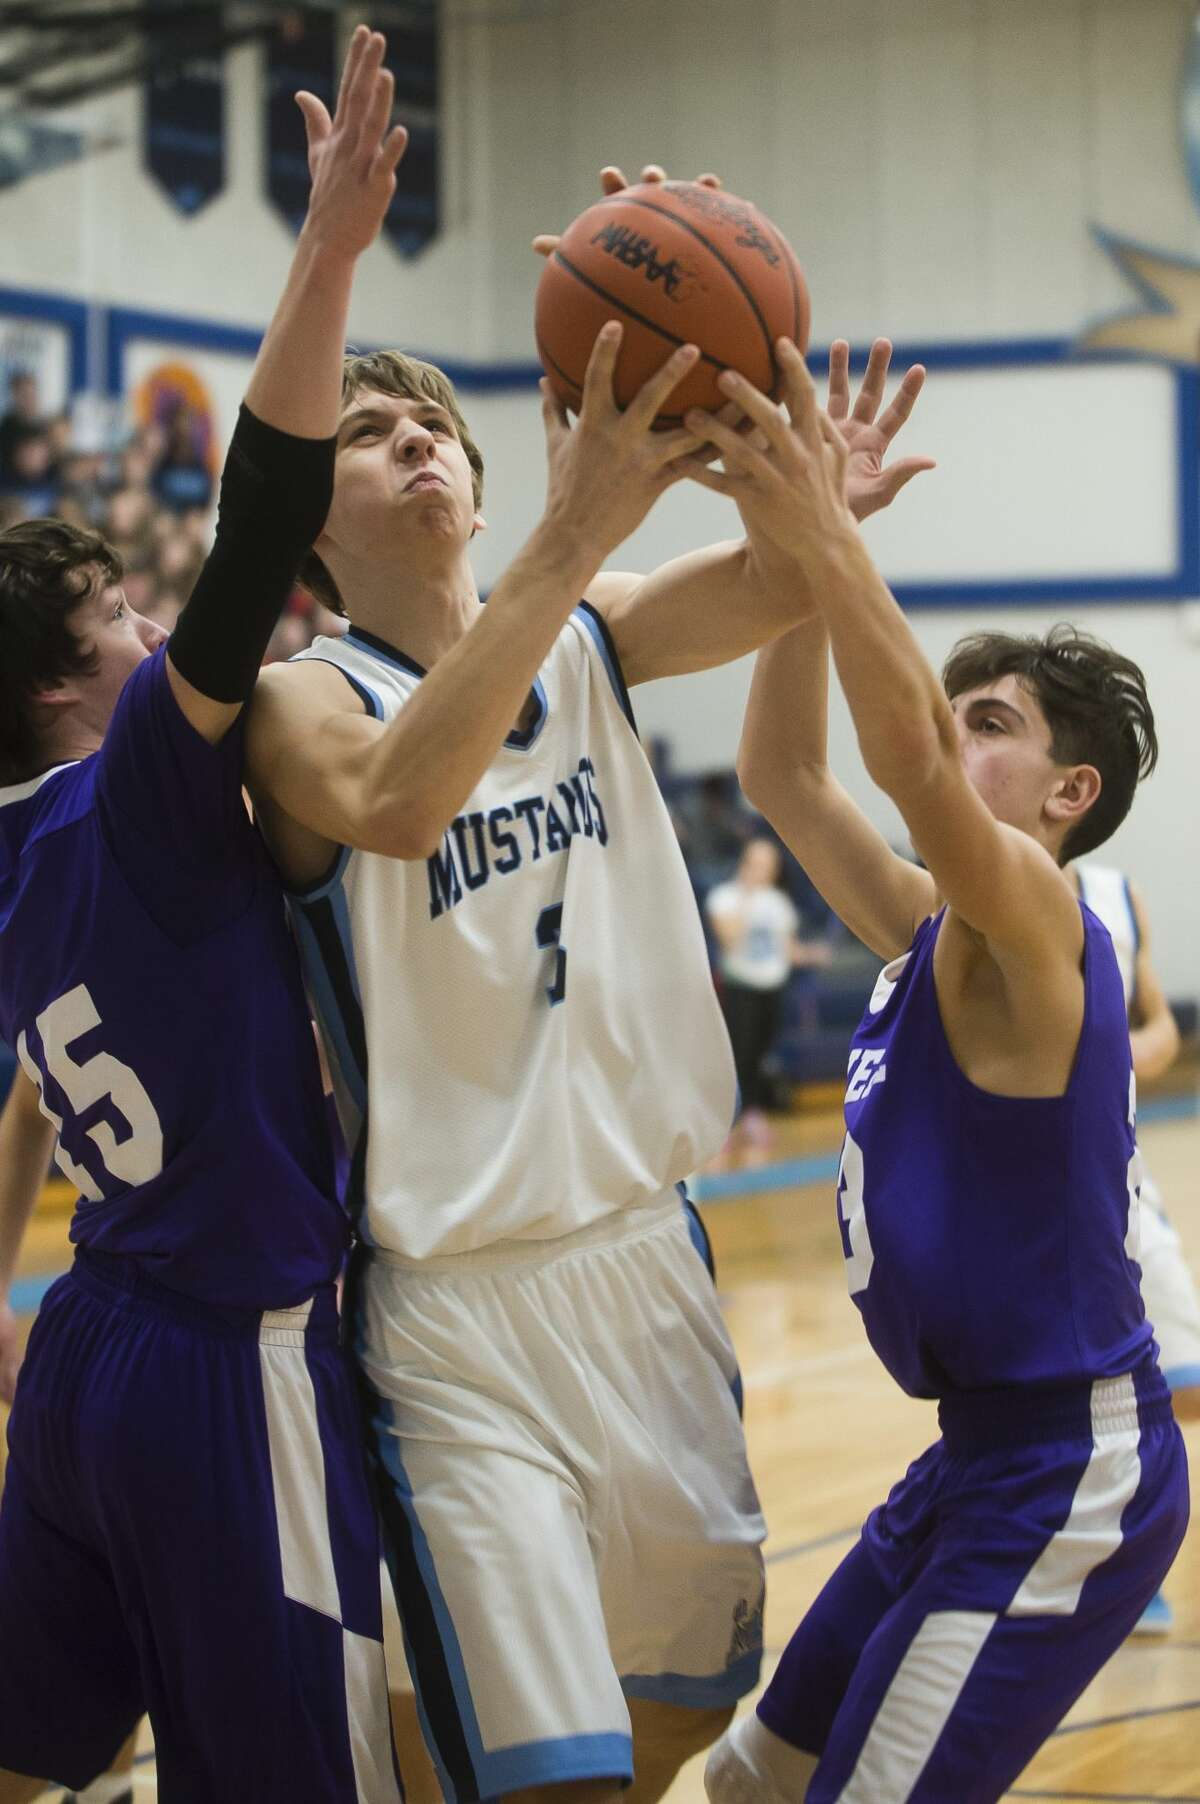 Meridian junior Lucas Lueder takes a shot during the Mustangs' game against Farwell on Thursday, Dec. 14, 2017 at Meridian Early College High School. (Katy Kildee/kkildee@mdn.net)